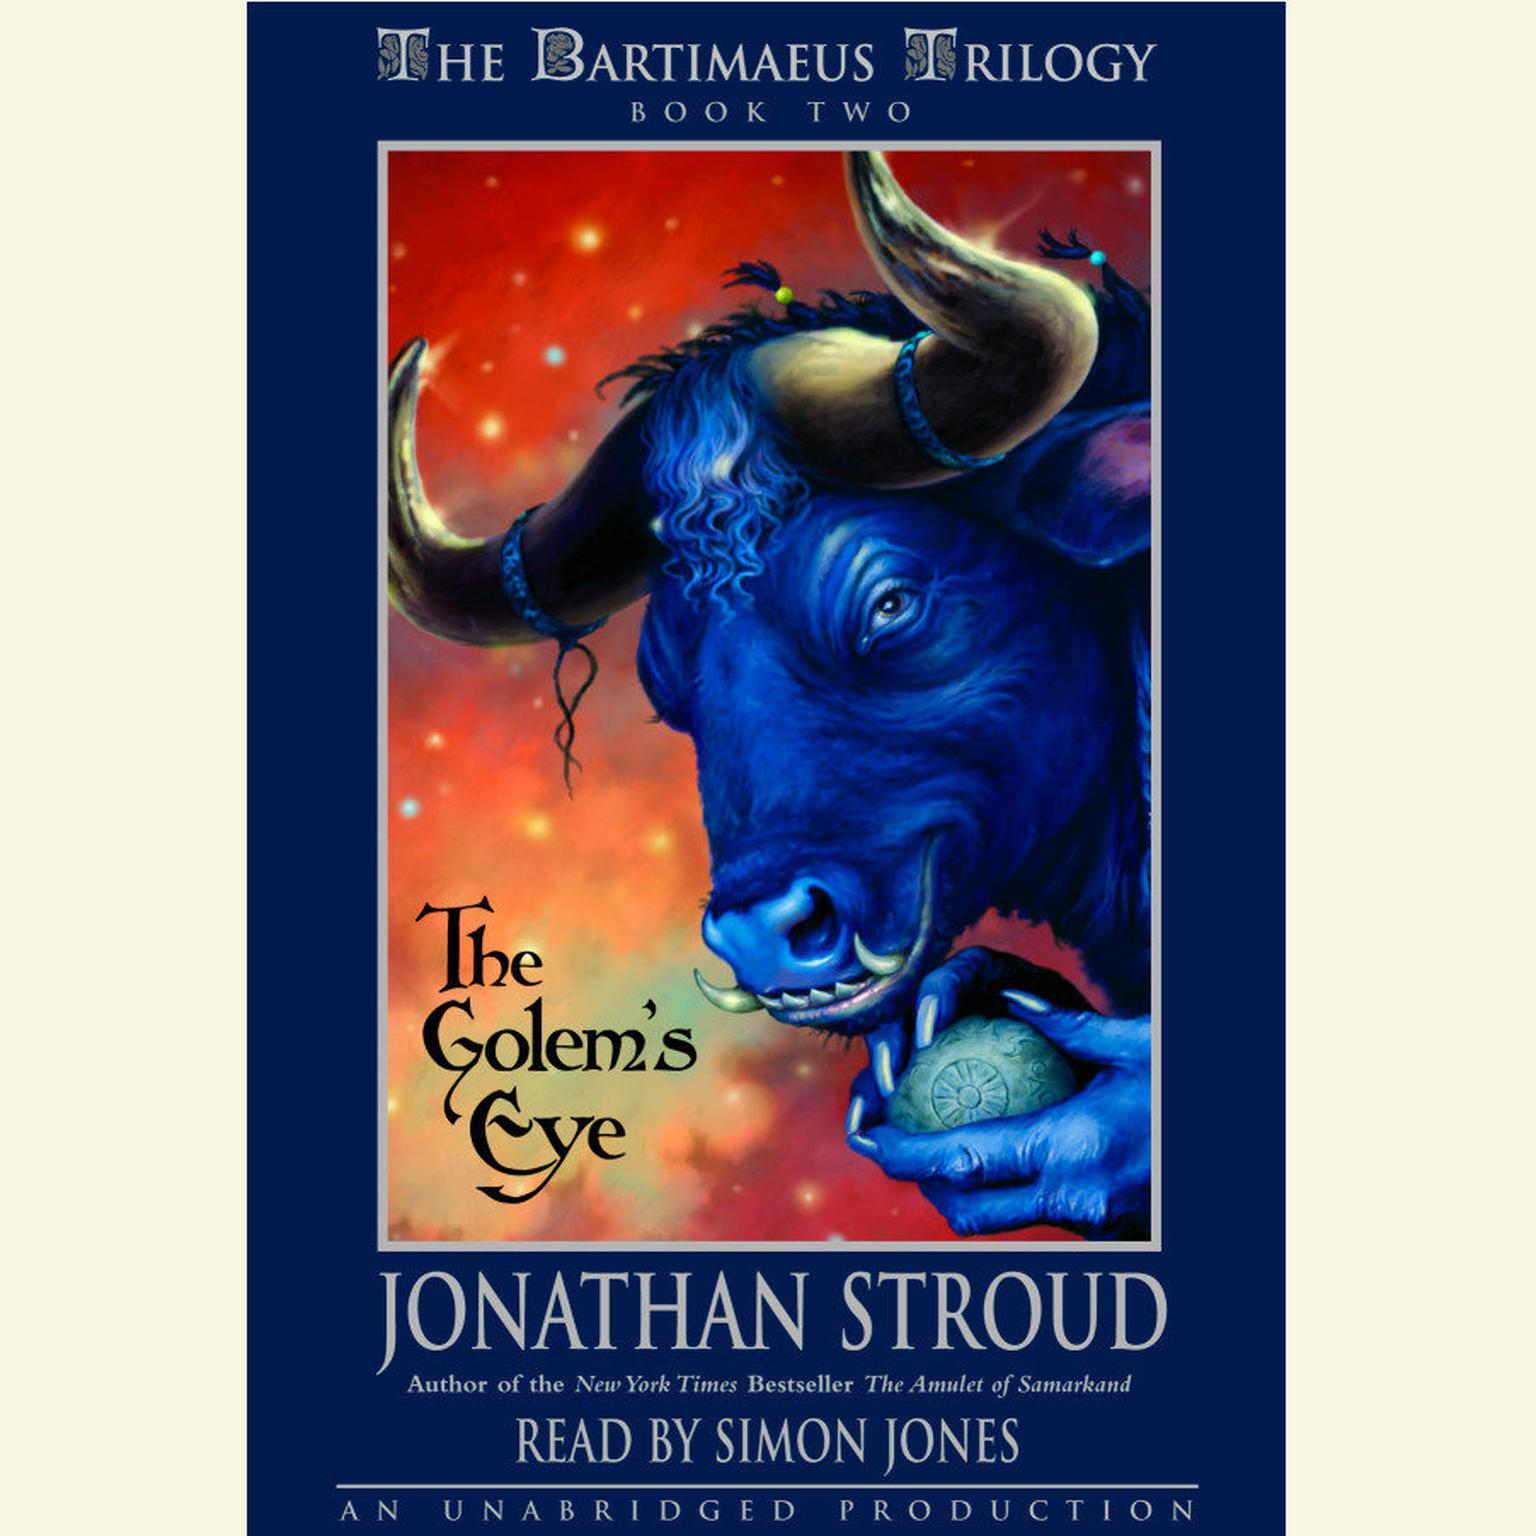 Printable The Bartimaeus Trilogy, Book Two: The Golem's Eye Audiobook Cover Art